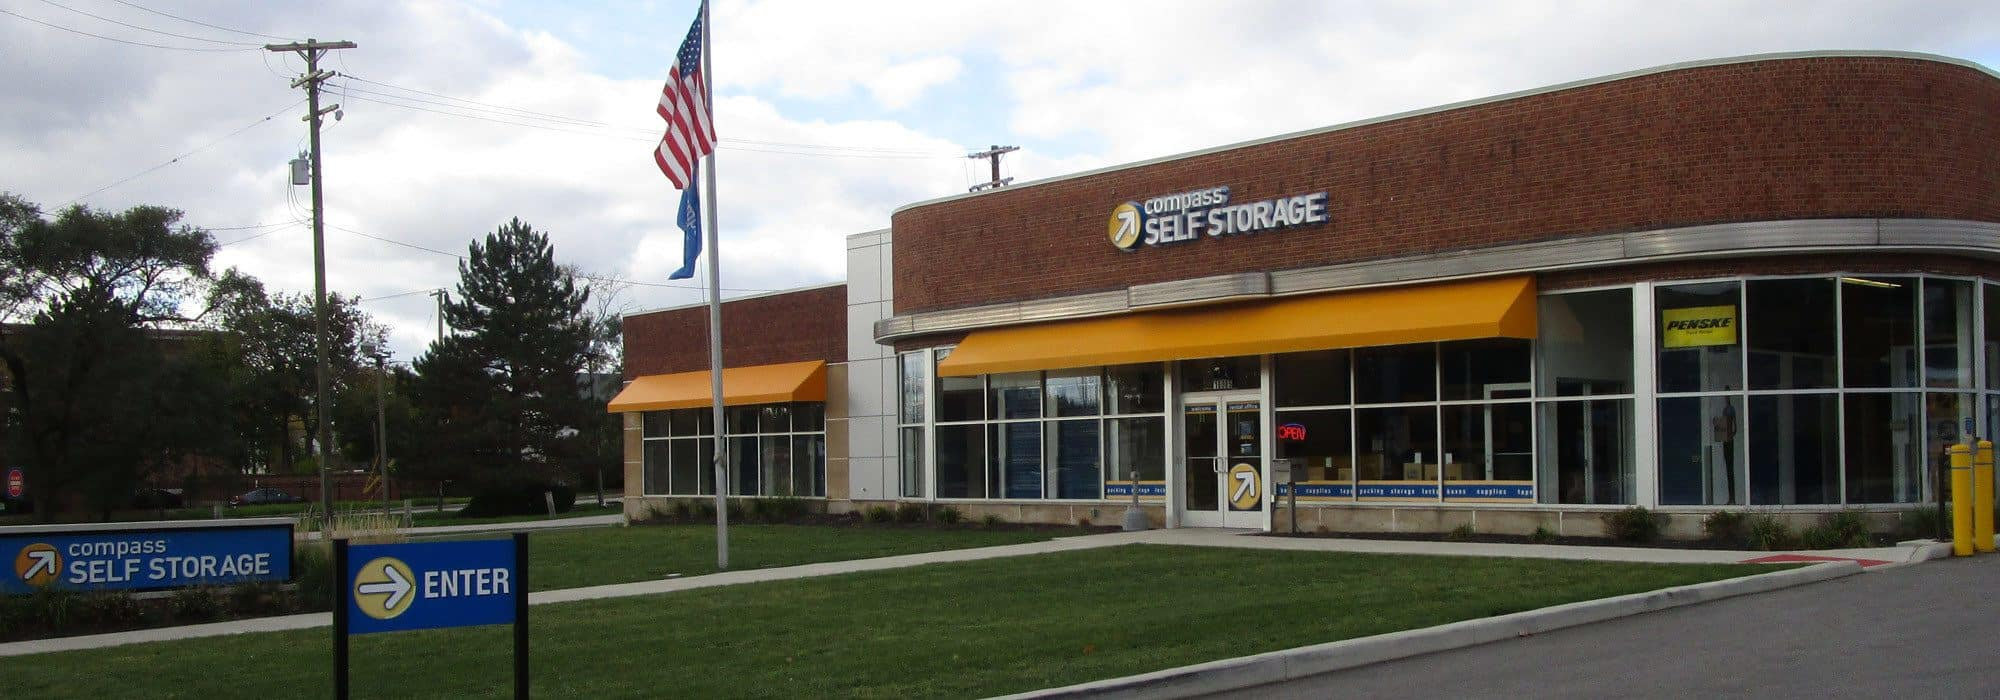 Self storage in Shaker Heights OH